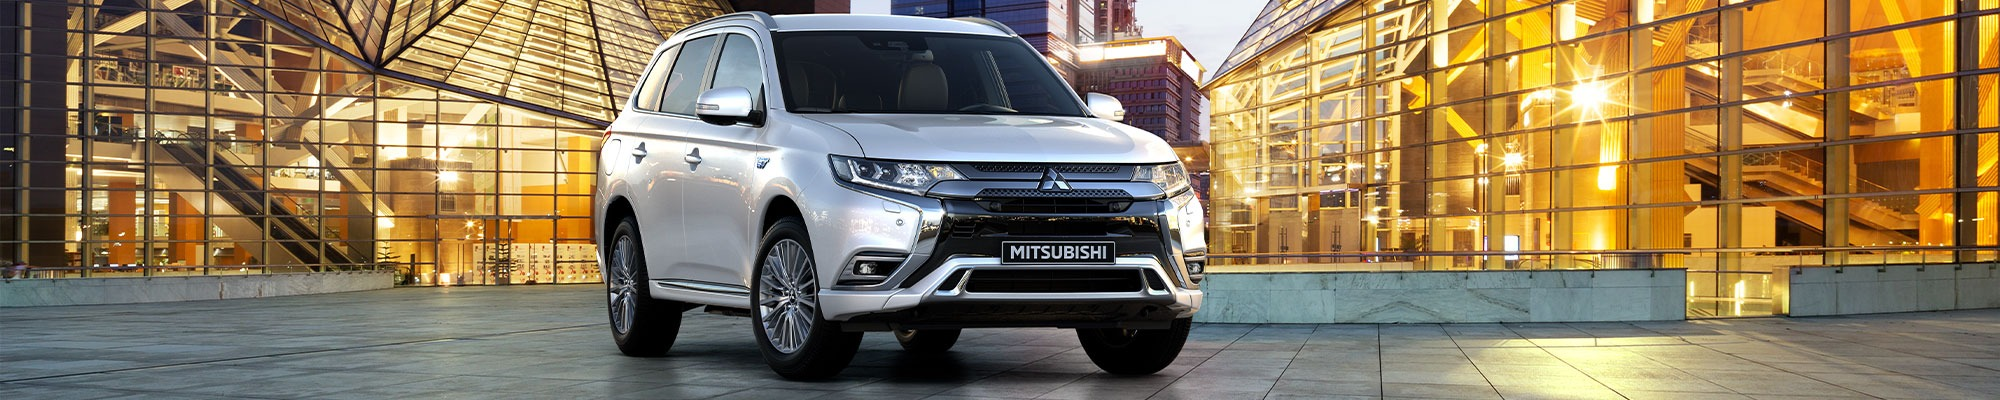 Mitsubishi Motability at Close Motor Company